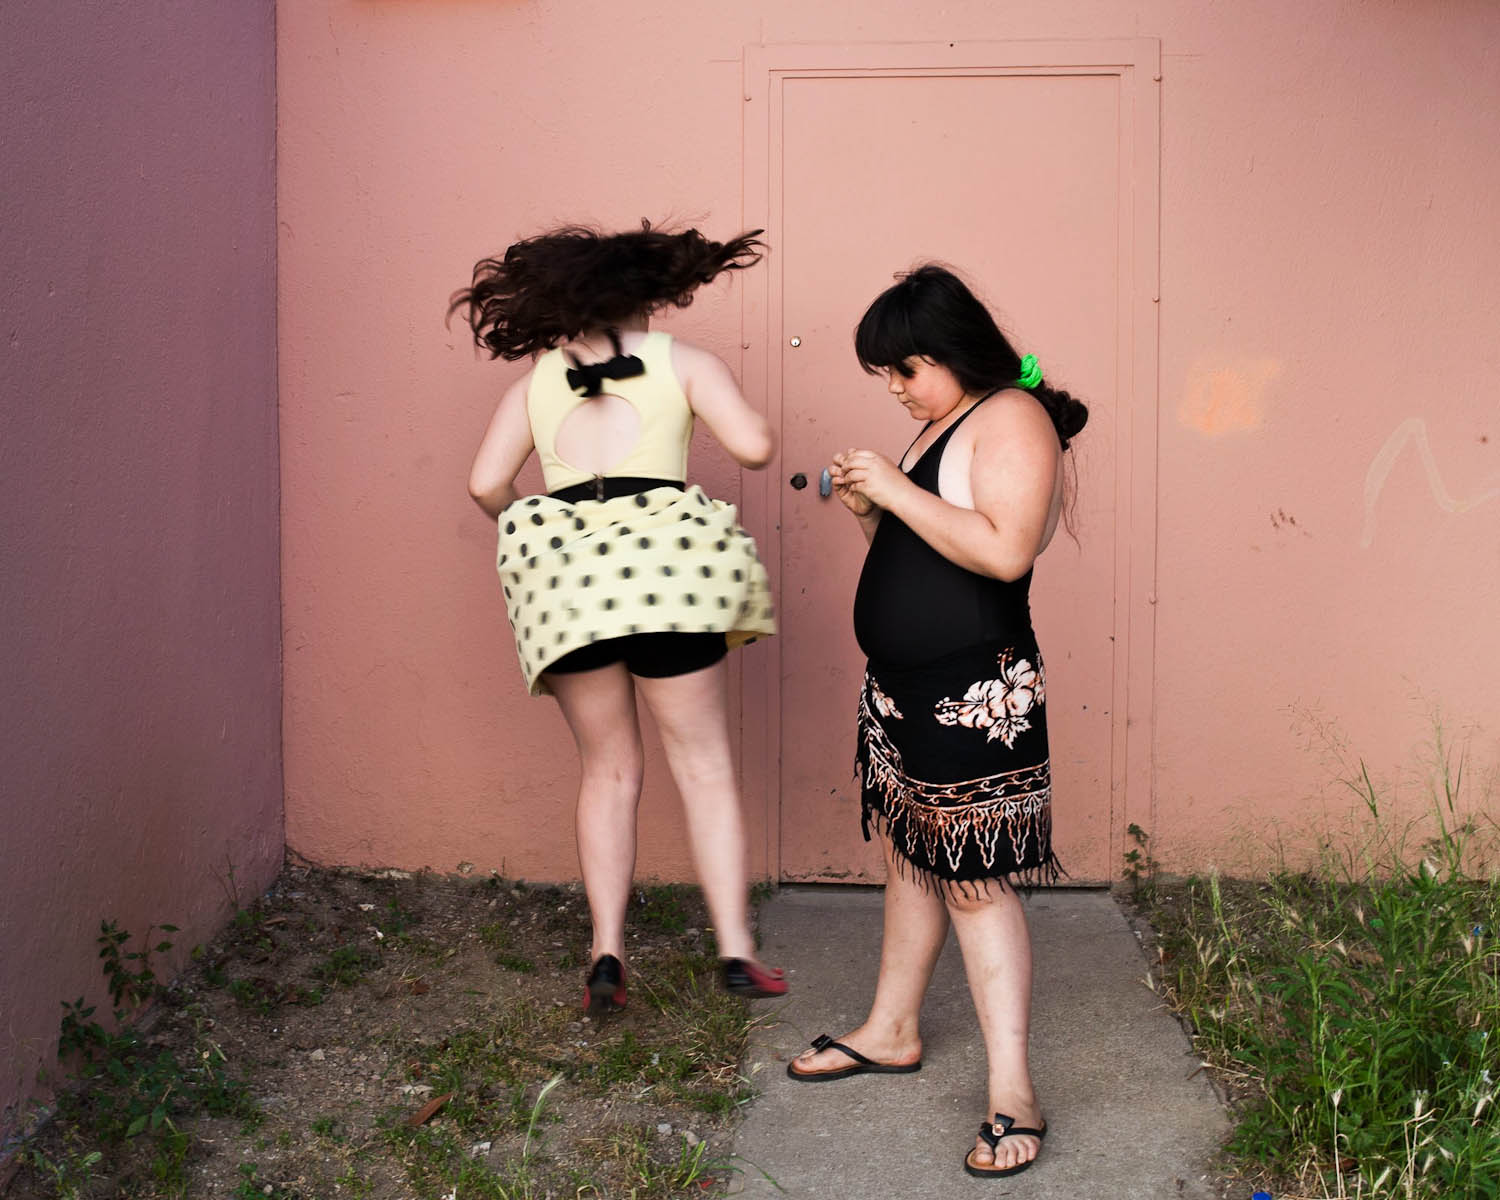 Ilona and Maddelena playing in the street of their neighbourhood